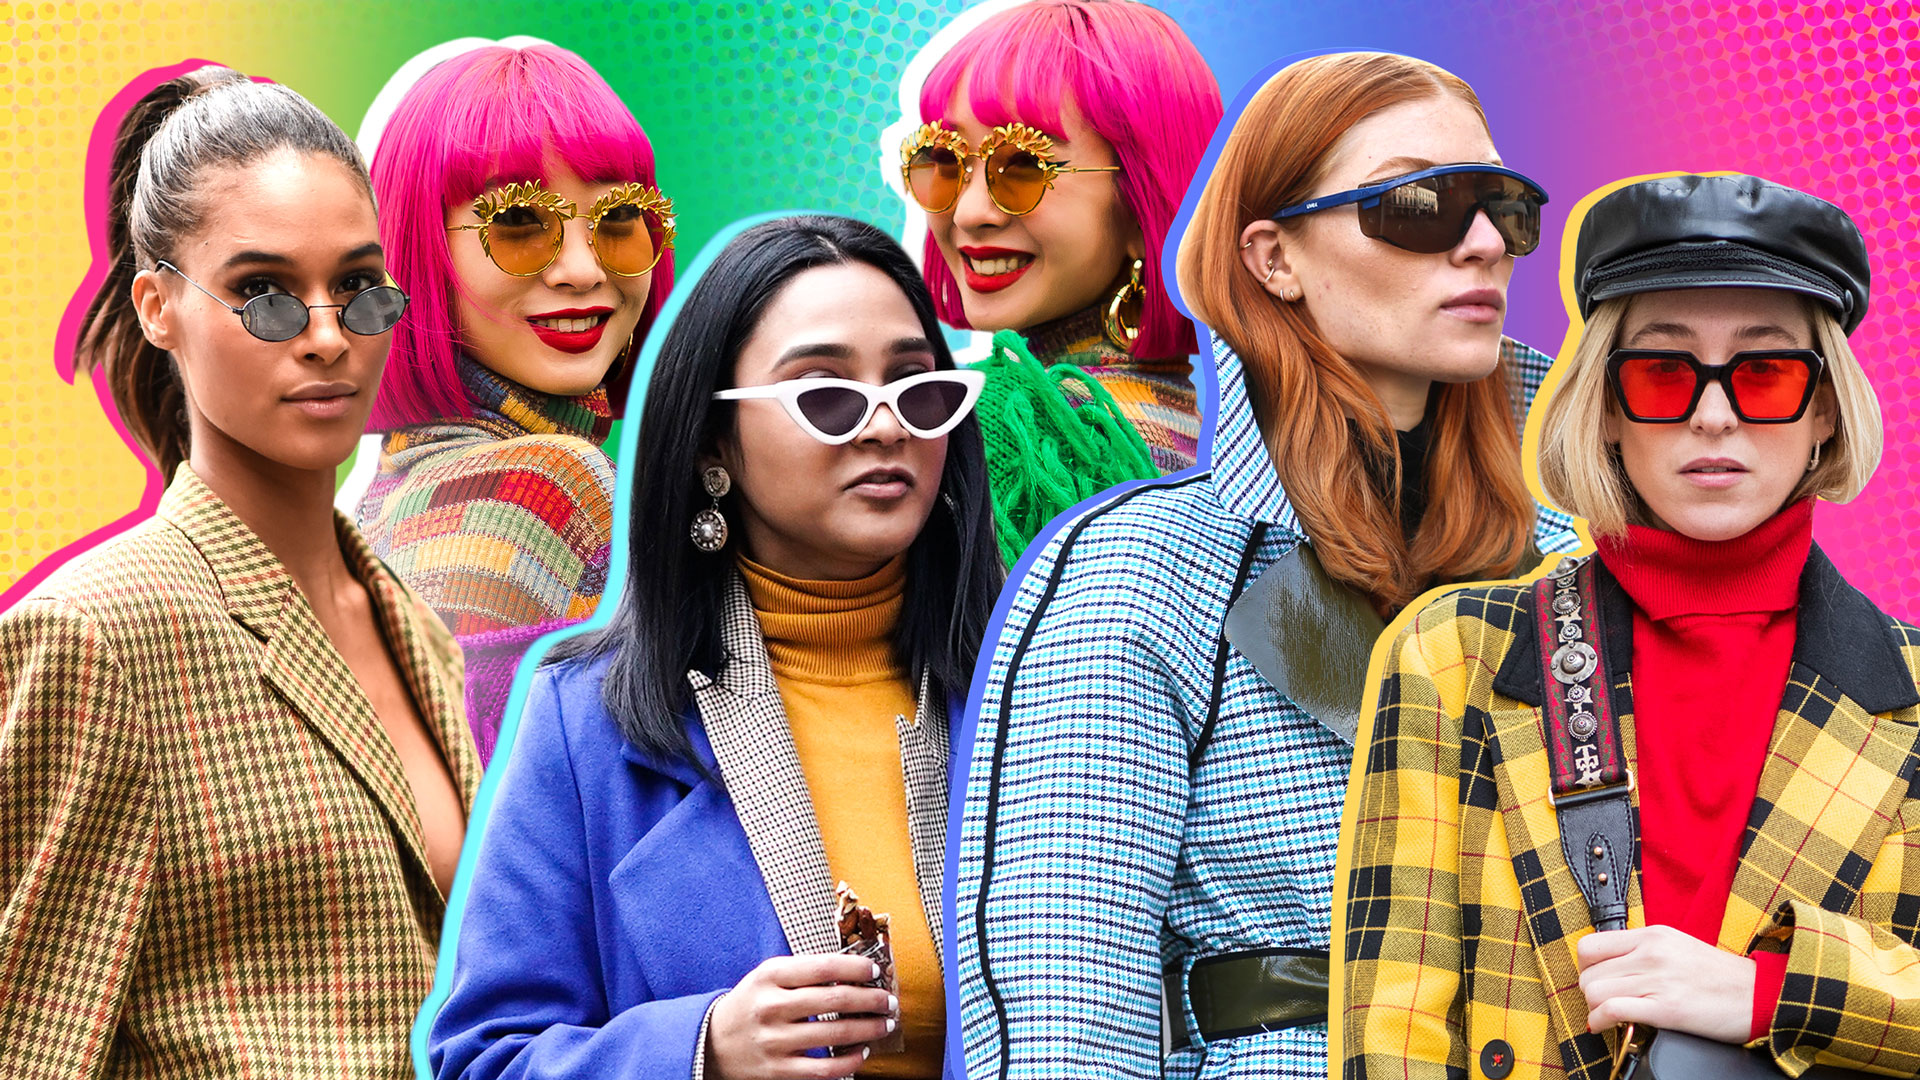 Winter Sunglasses Are the Underrated Accessory You Can't Overlook